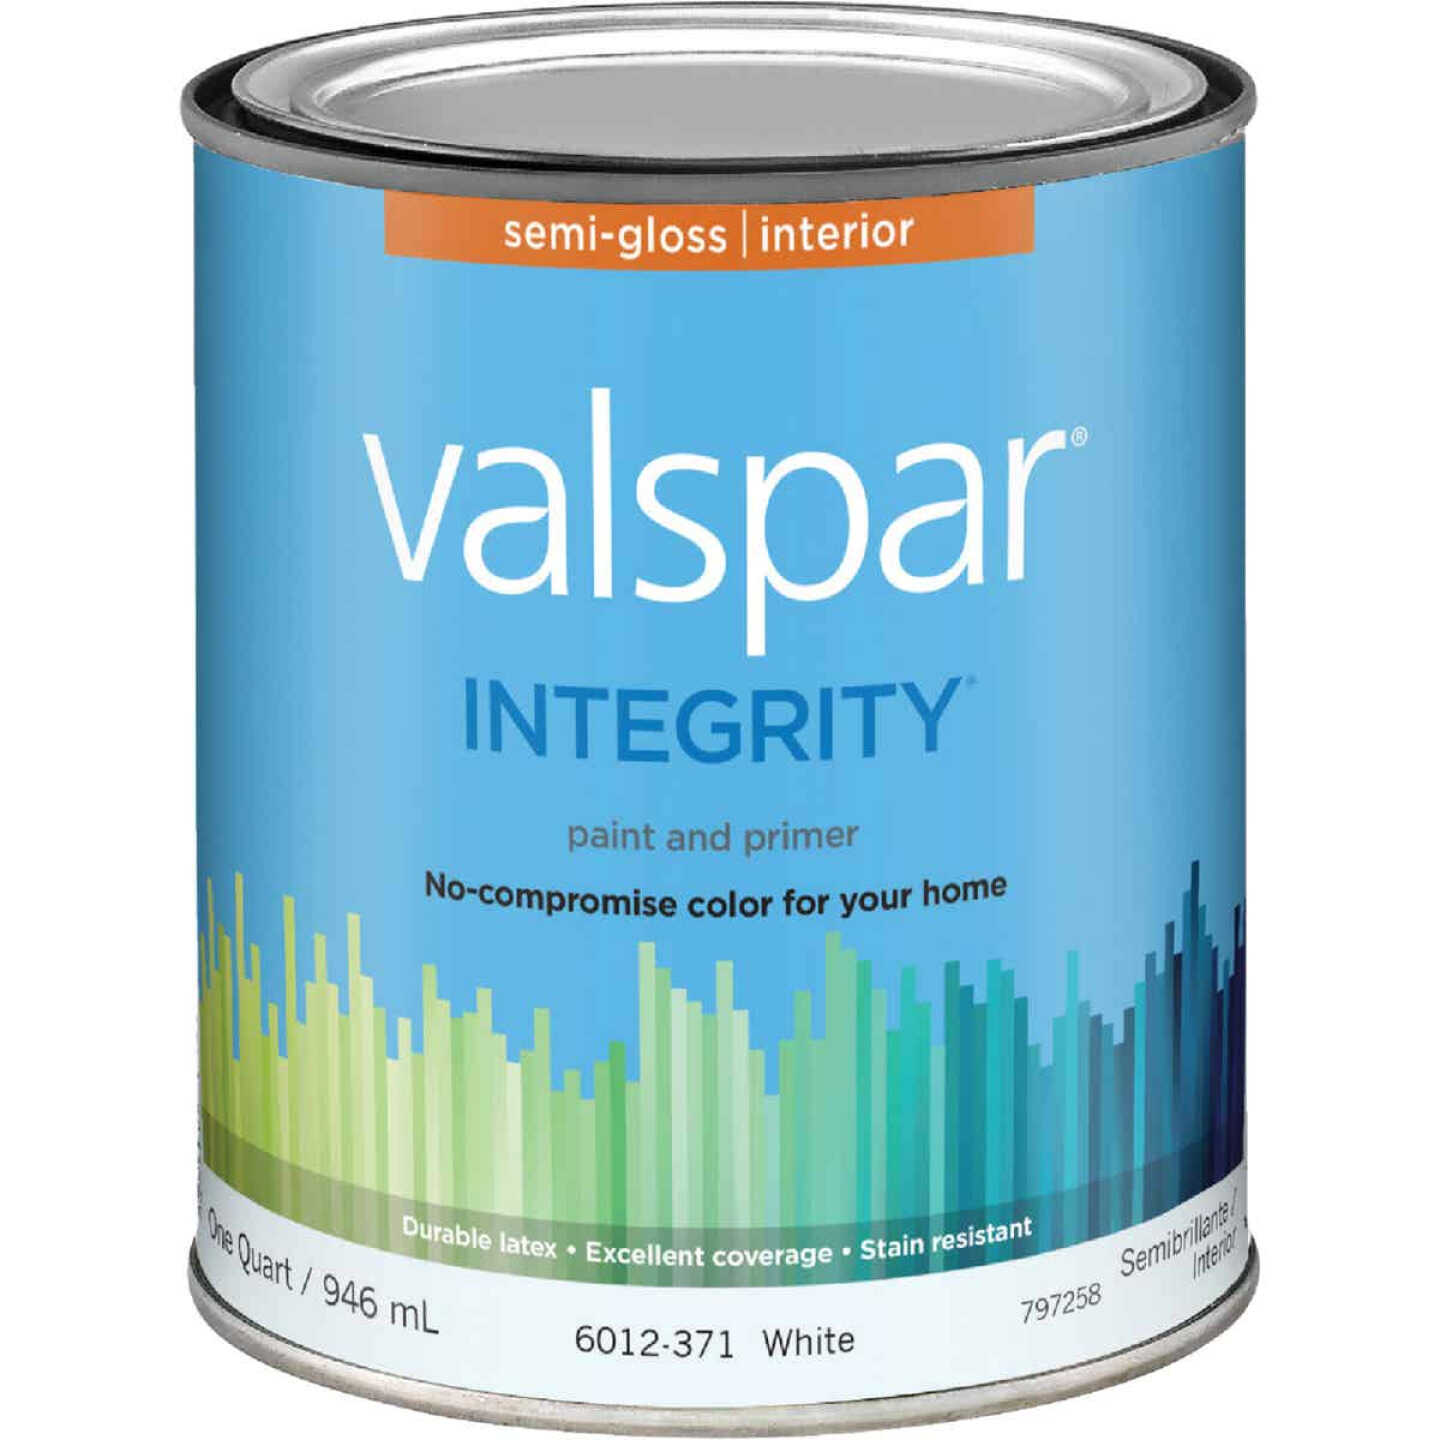 Valspar Integrity Latex Paint And Primer Semi-Gloss Interior Wall Paint, White, 1 Qt. Image 1